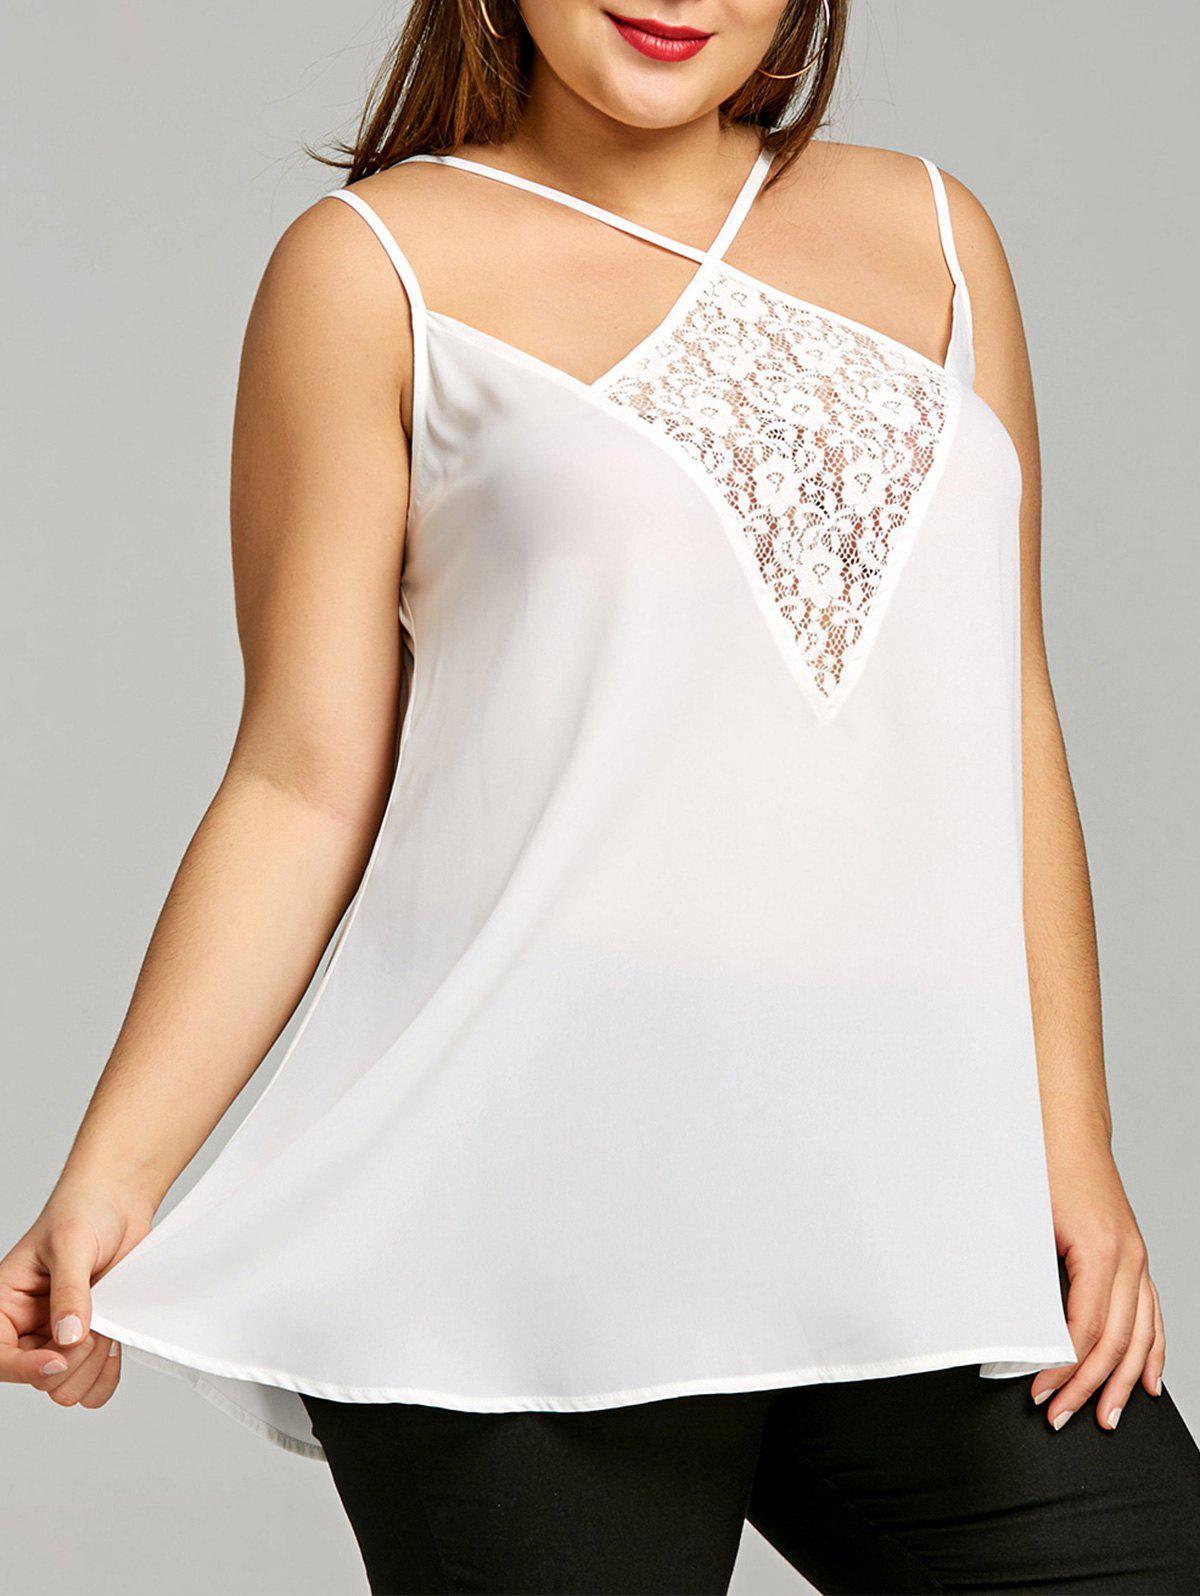 Plus Size Lace Insert Strappy Tank Top - OFF WHITE 2XL